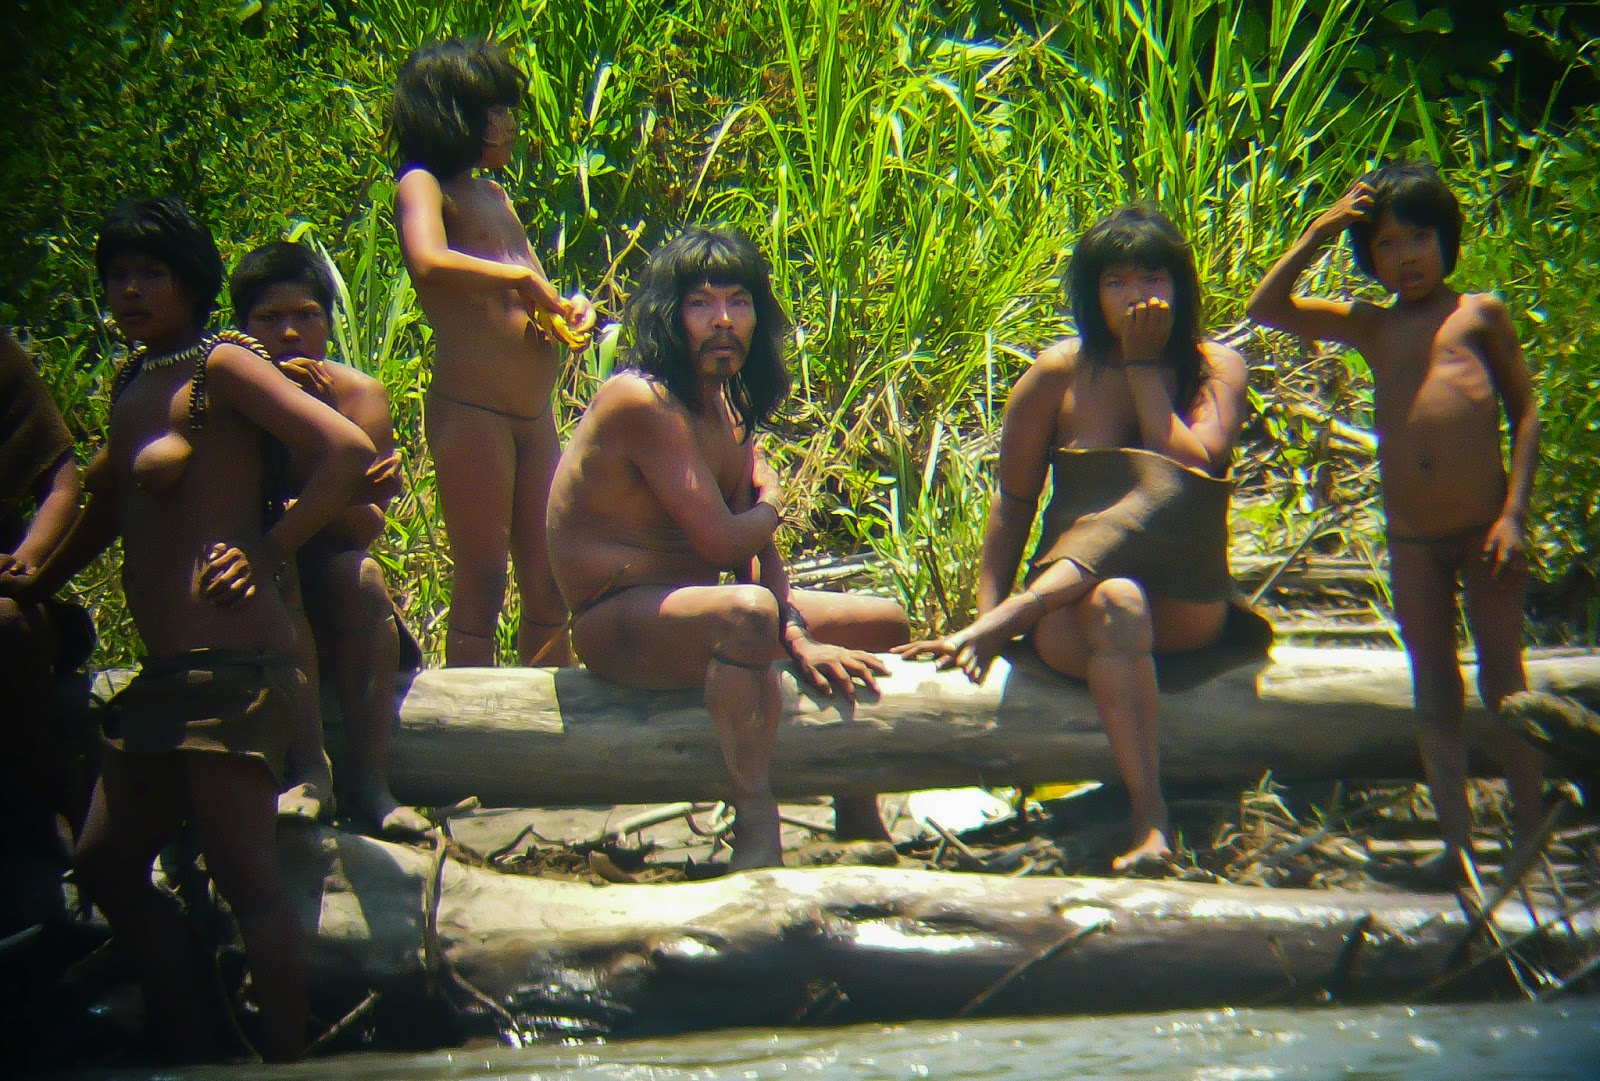 naked-peru-indians-and